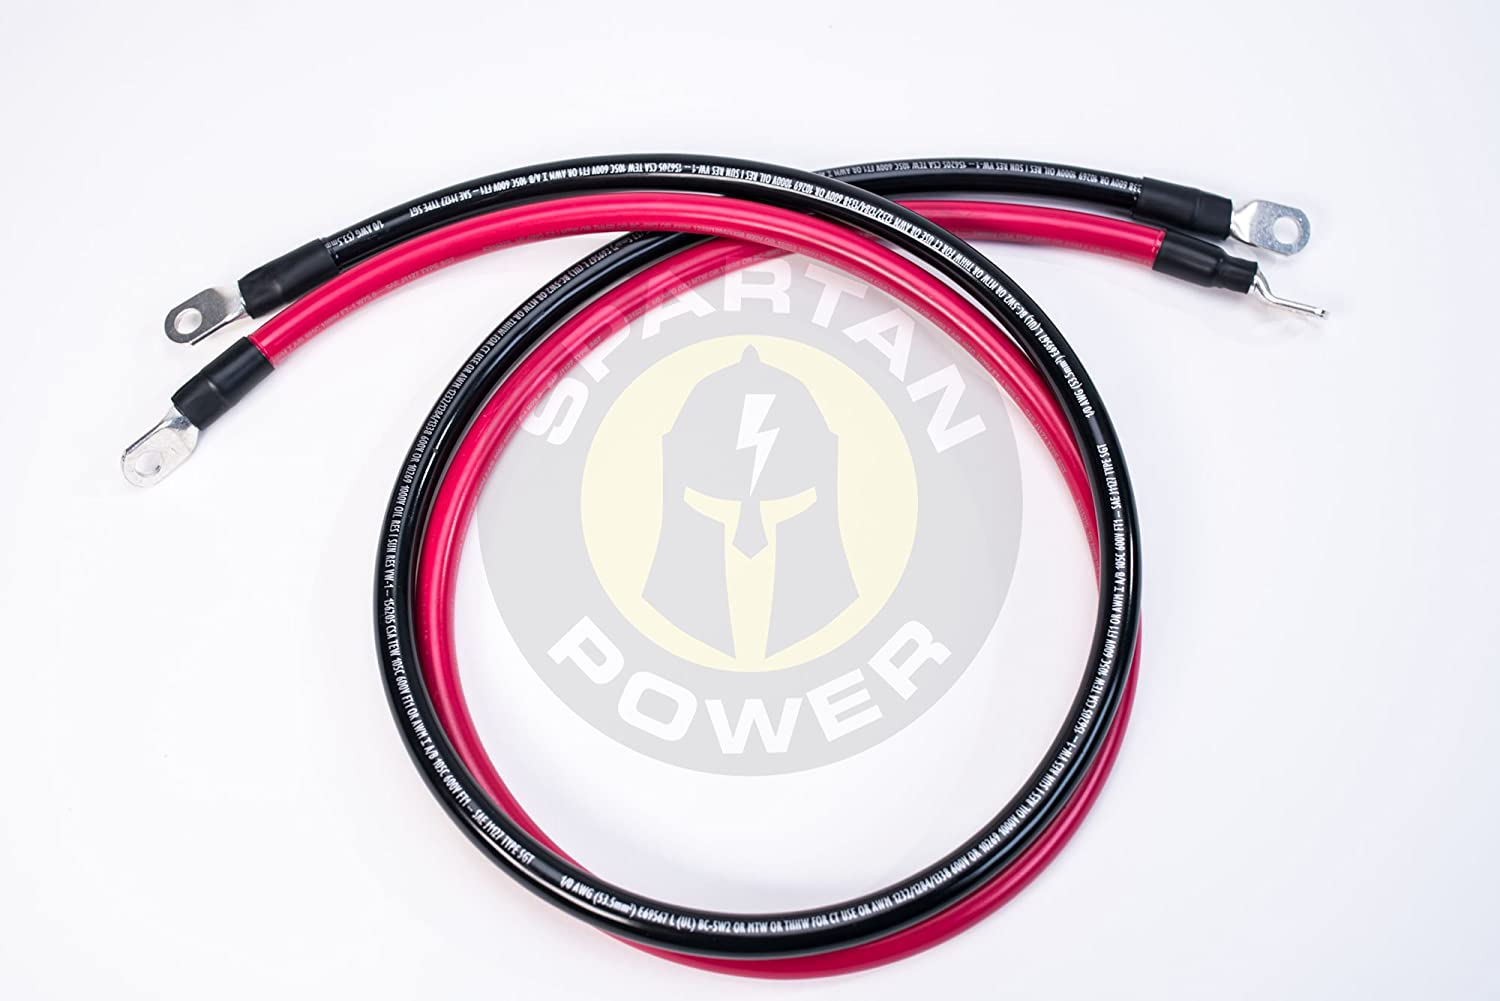 Made in America 15 ft 4//0 AWG Gauge Battery Cable Set by Spartan Power Many Lengths of Cables to Choose From